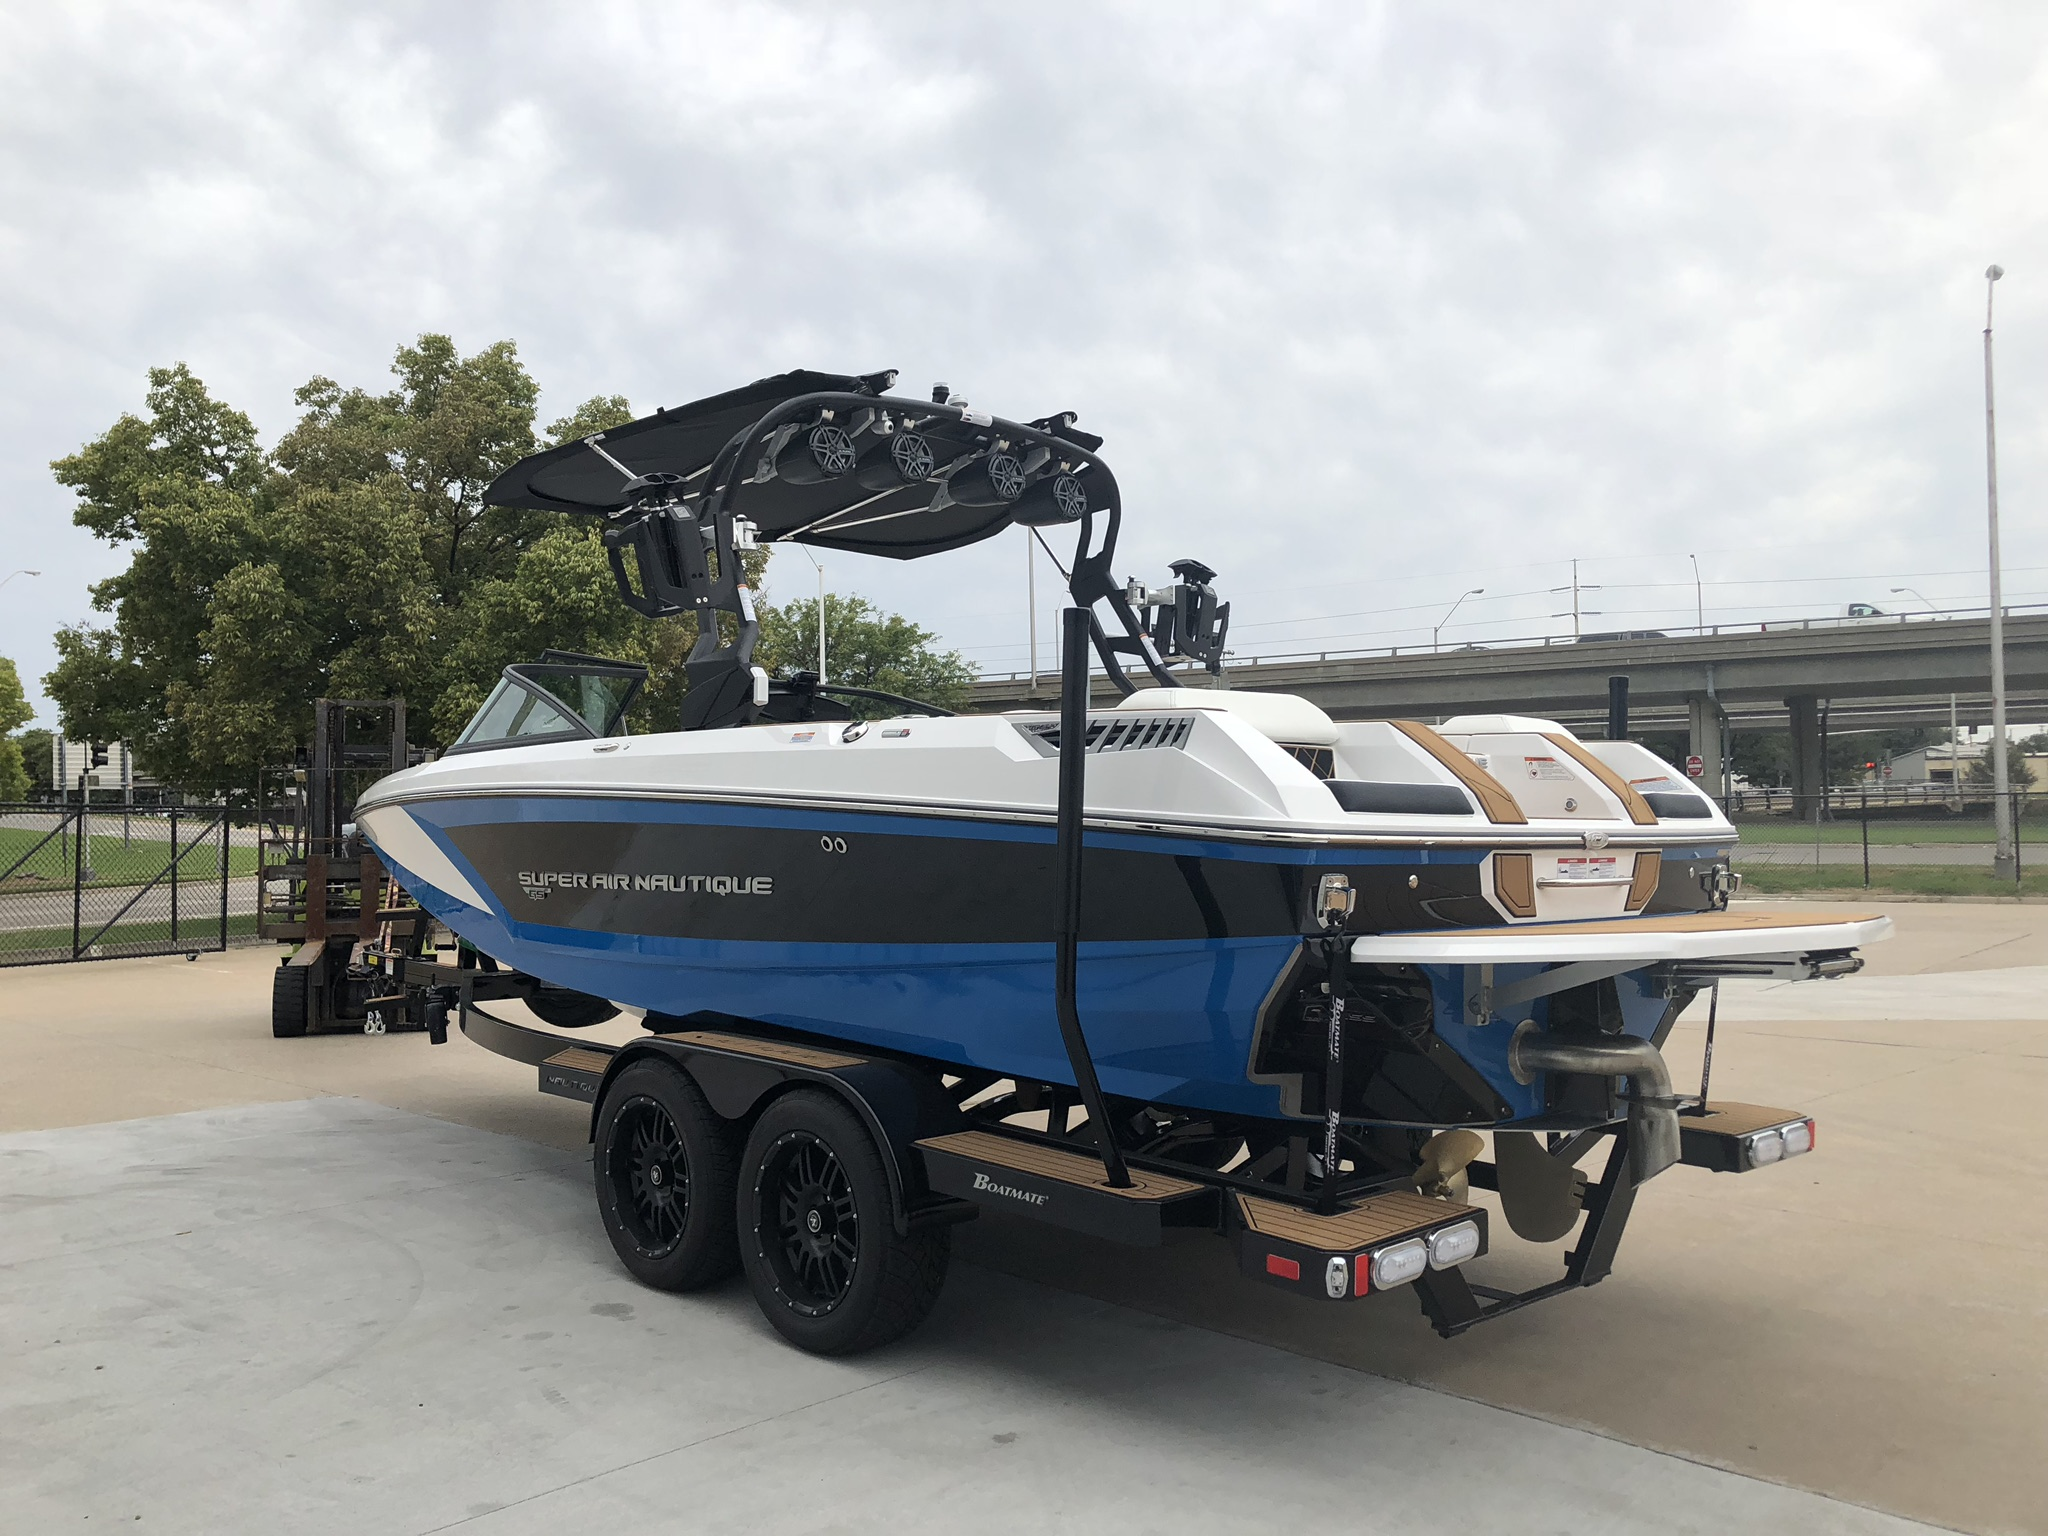 2019 Nautique GS22 Rear View